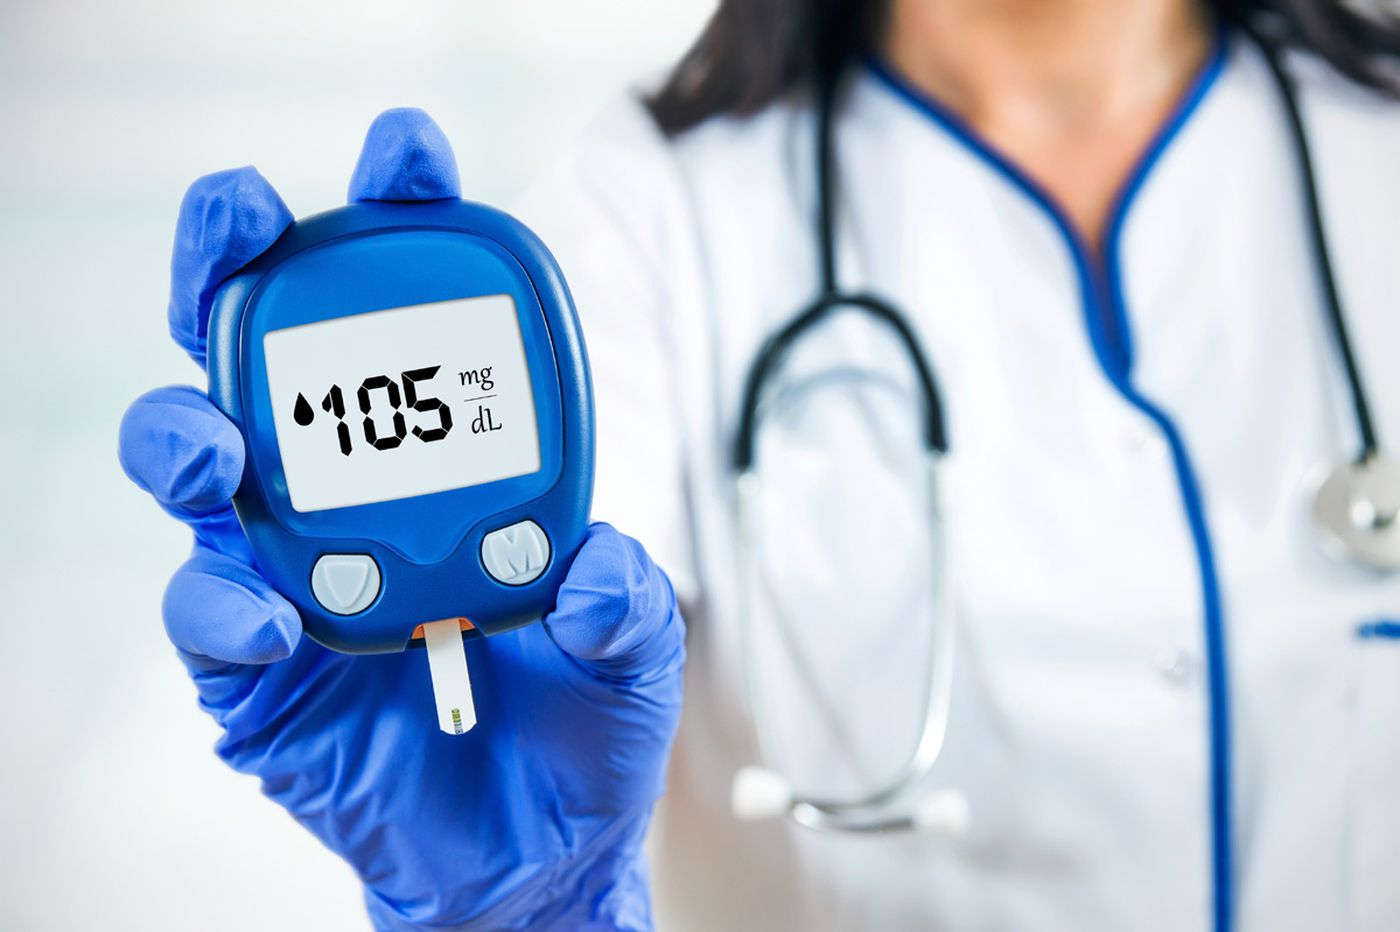 What is diabetes doing to my body? How do I manage it?